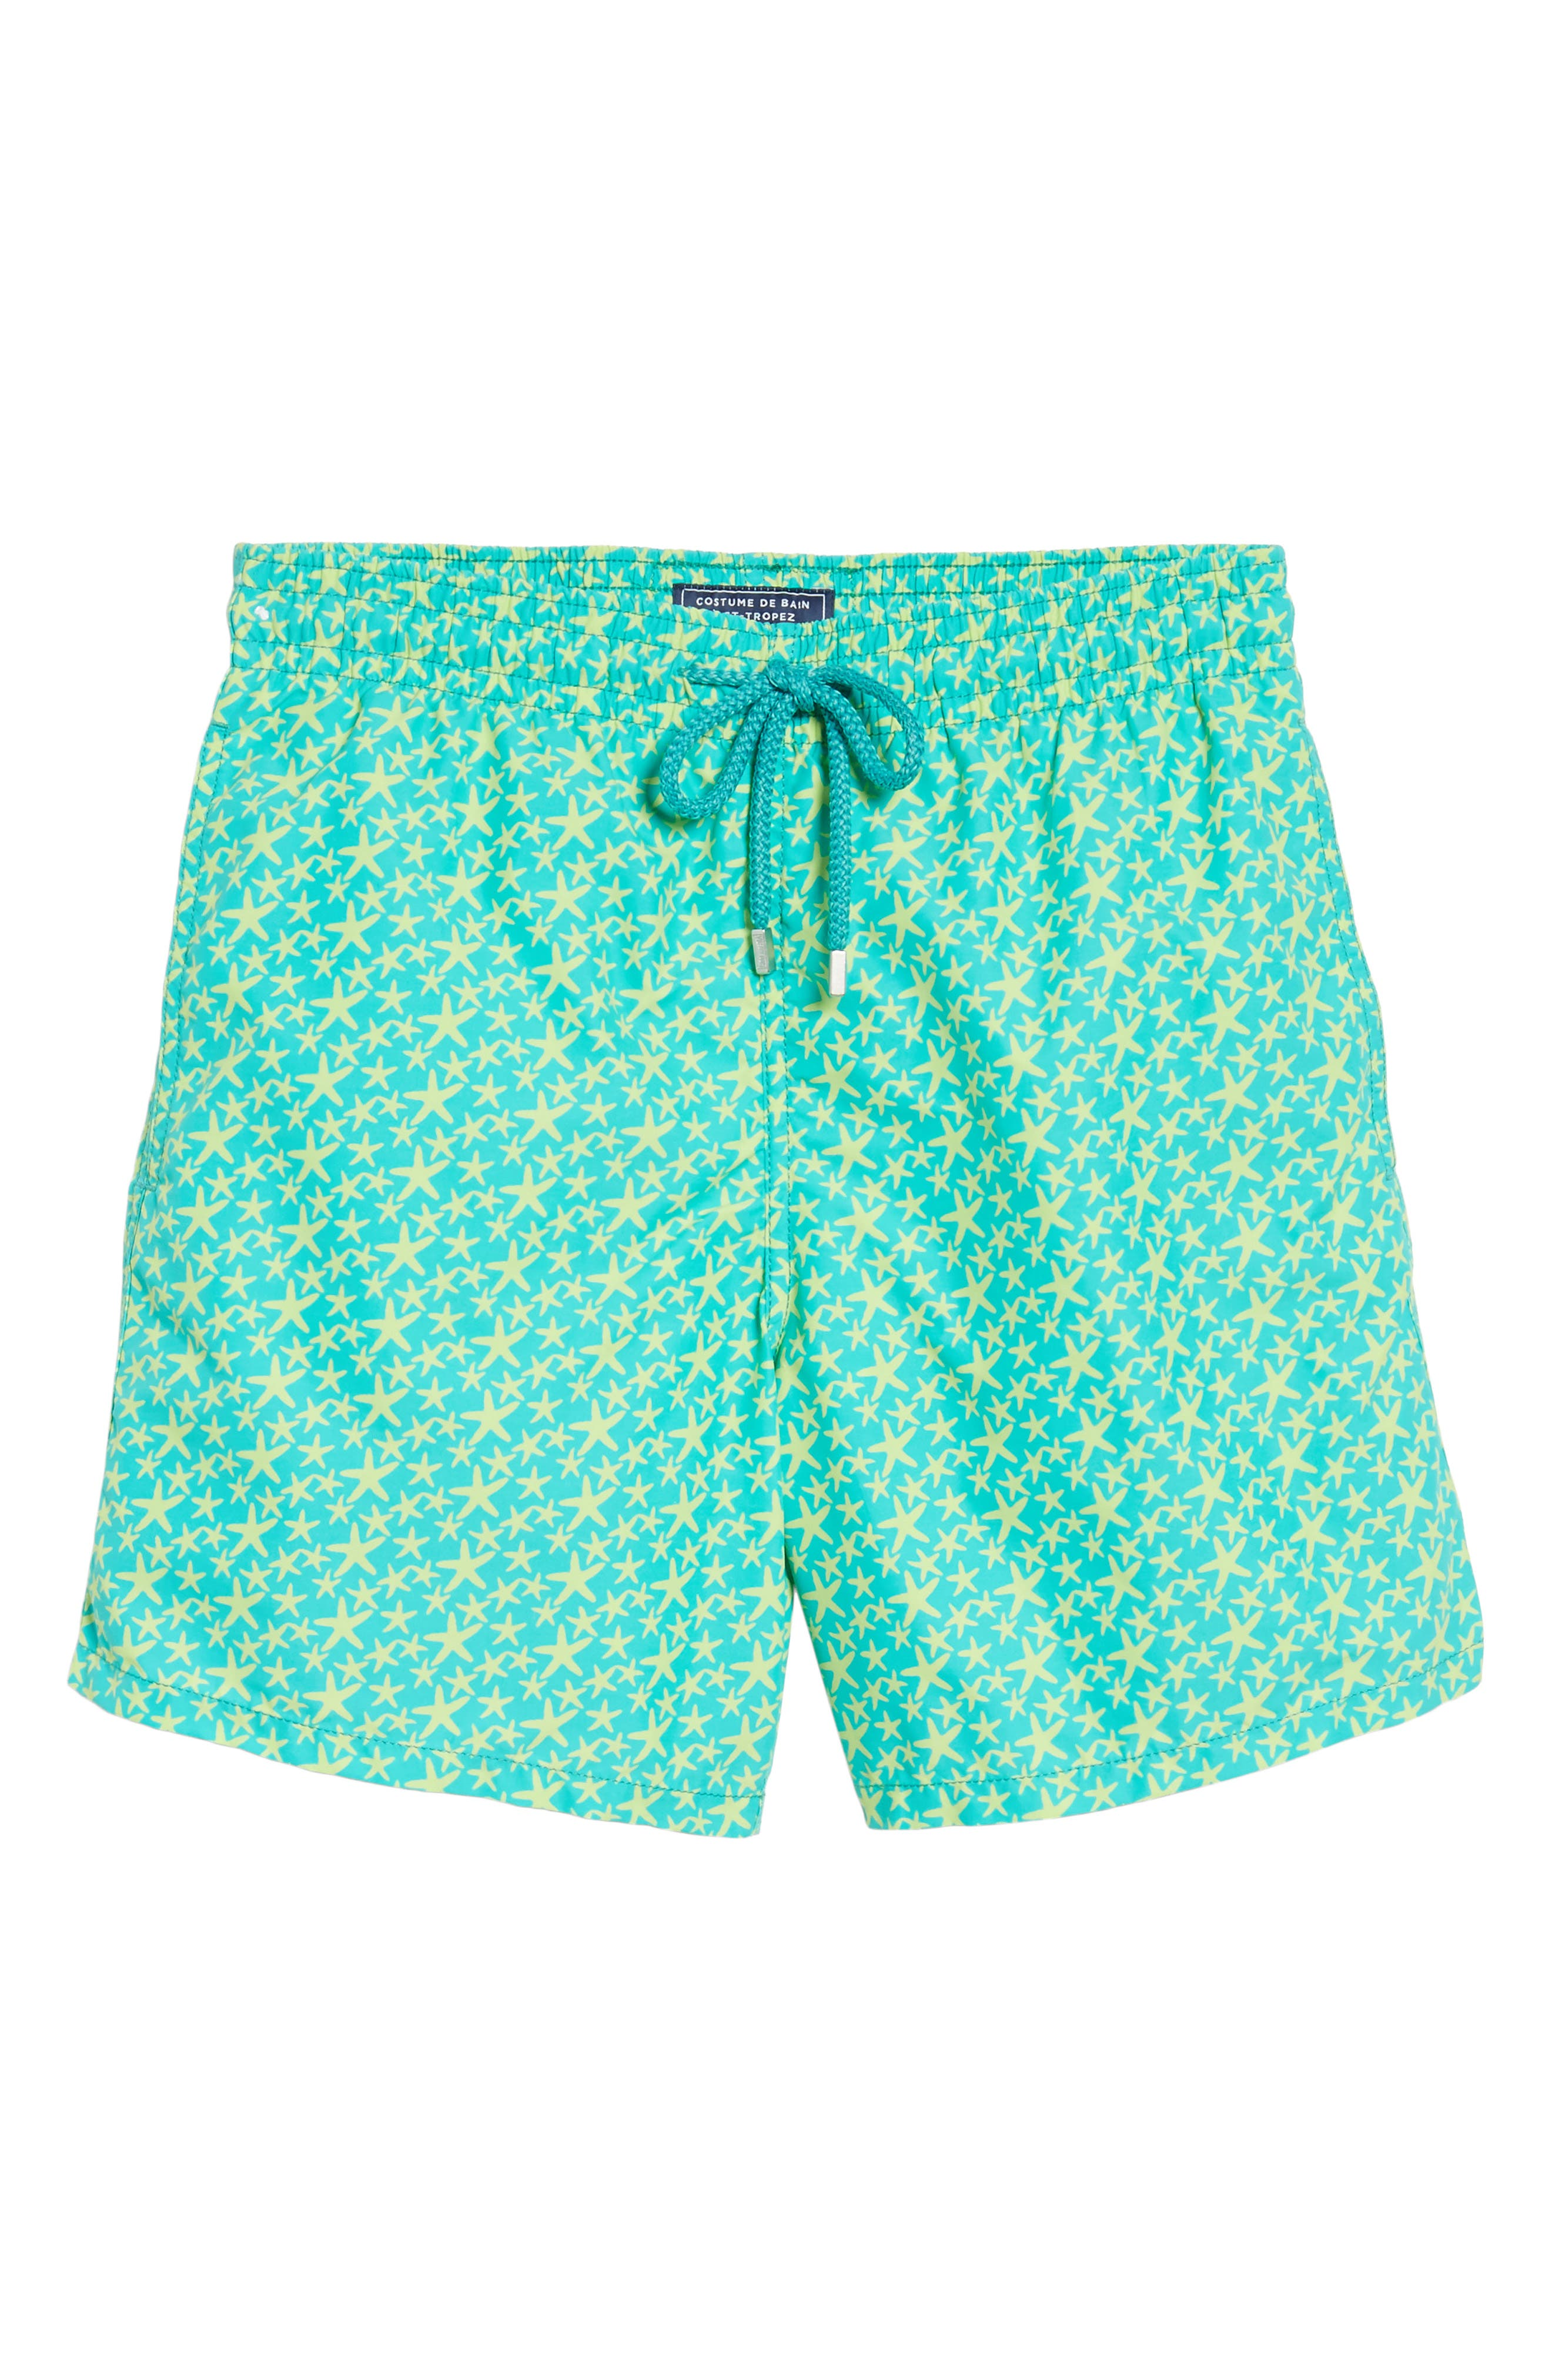 Micro Starlets Swim Trunks,                             Alternate thumbnail 6, color,                             348